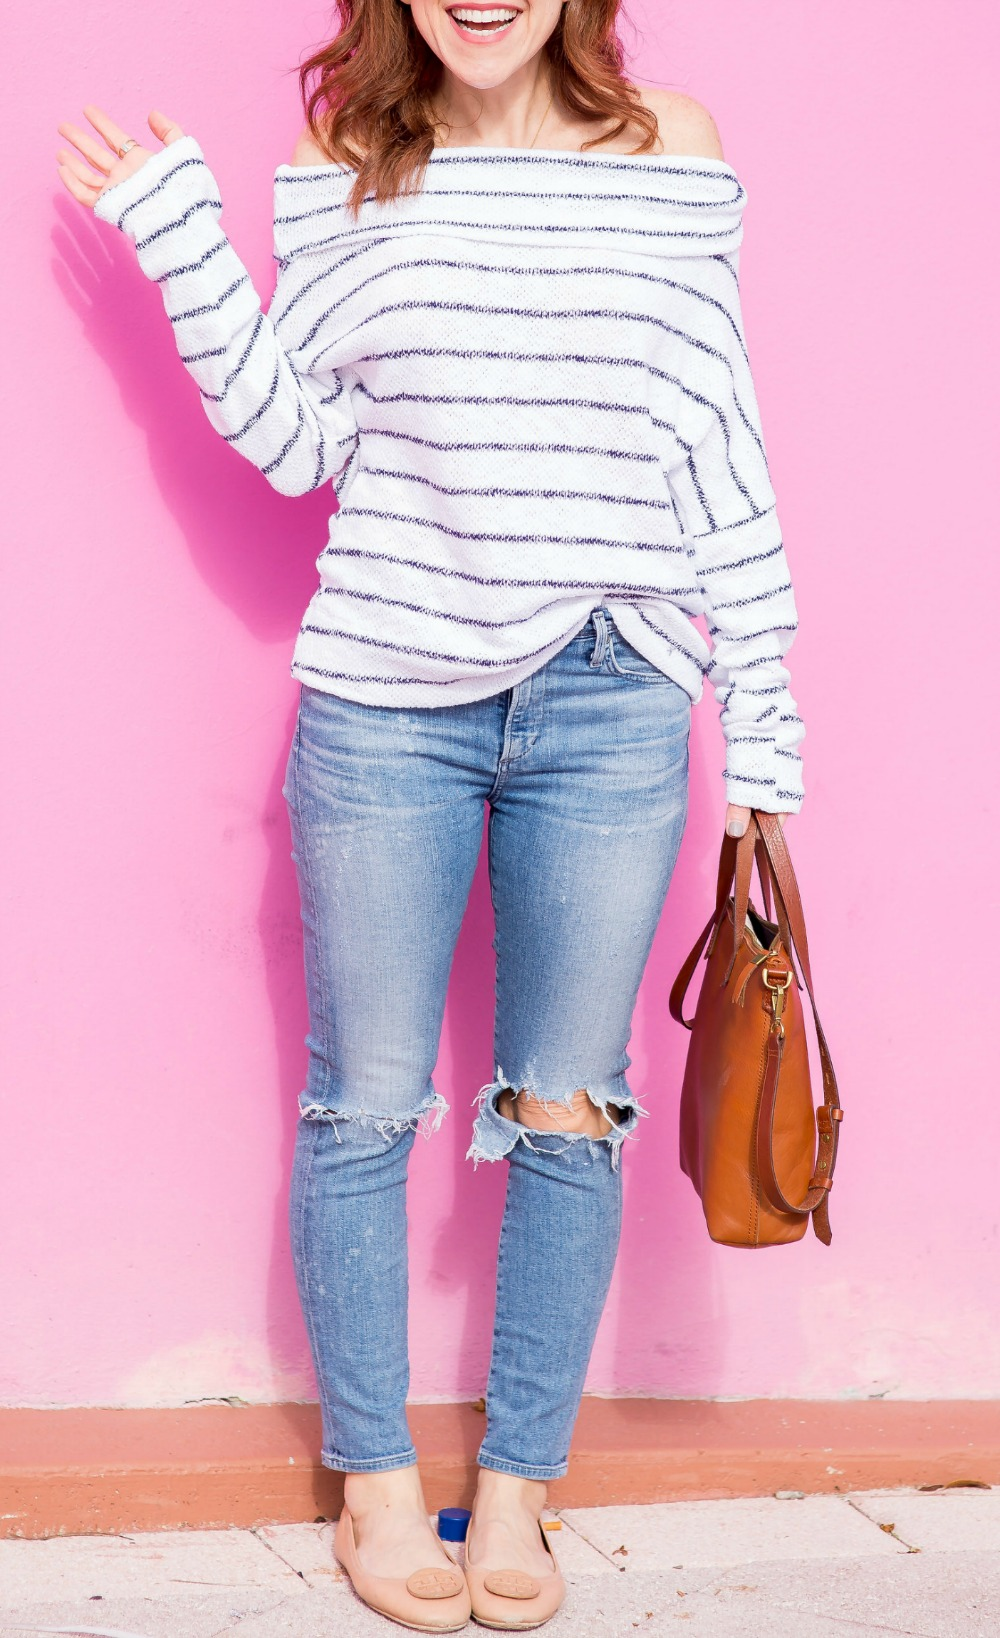 Spring style formula: striped off-the-shoulder sweater, distressed denim & neutral accessories - the most versatile striped top by popular Florida fashion blogger The Modern Savvy